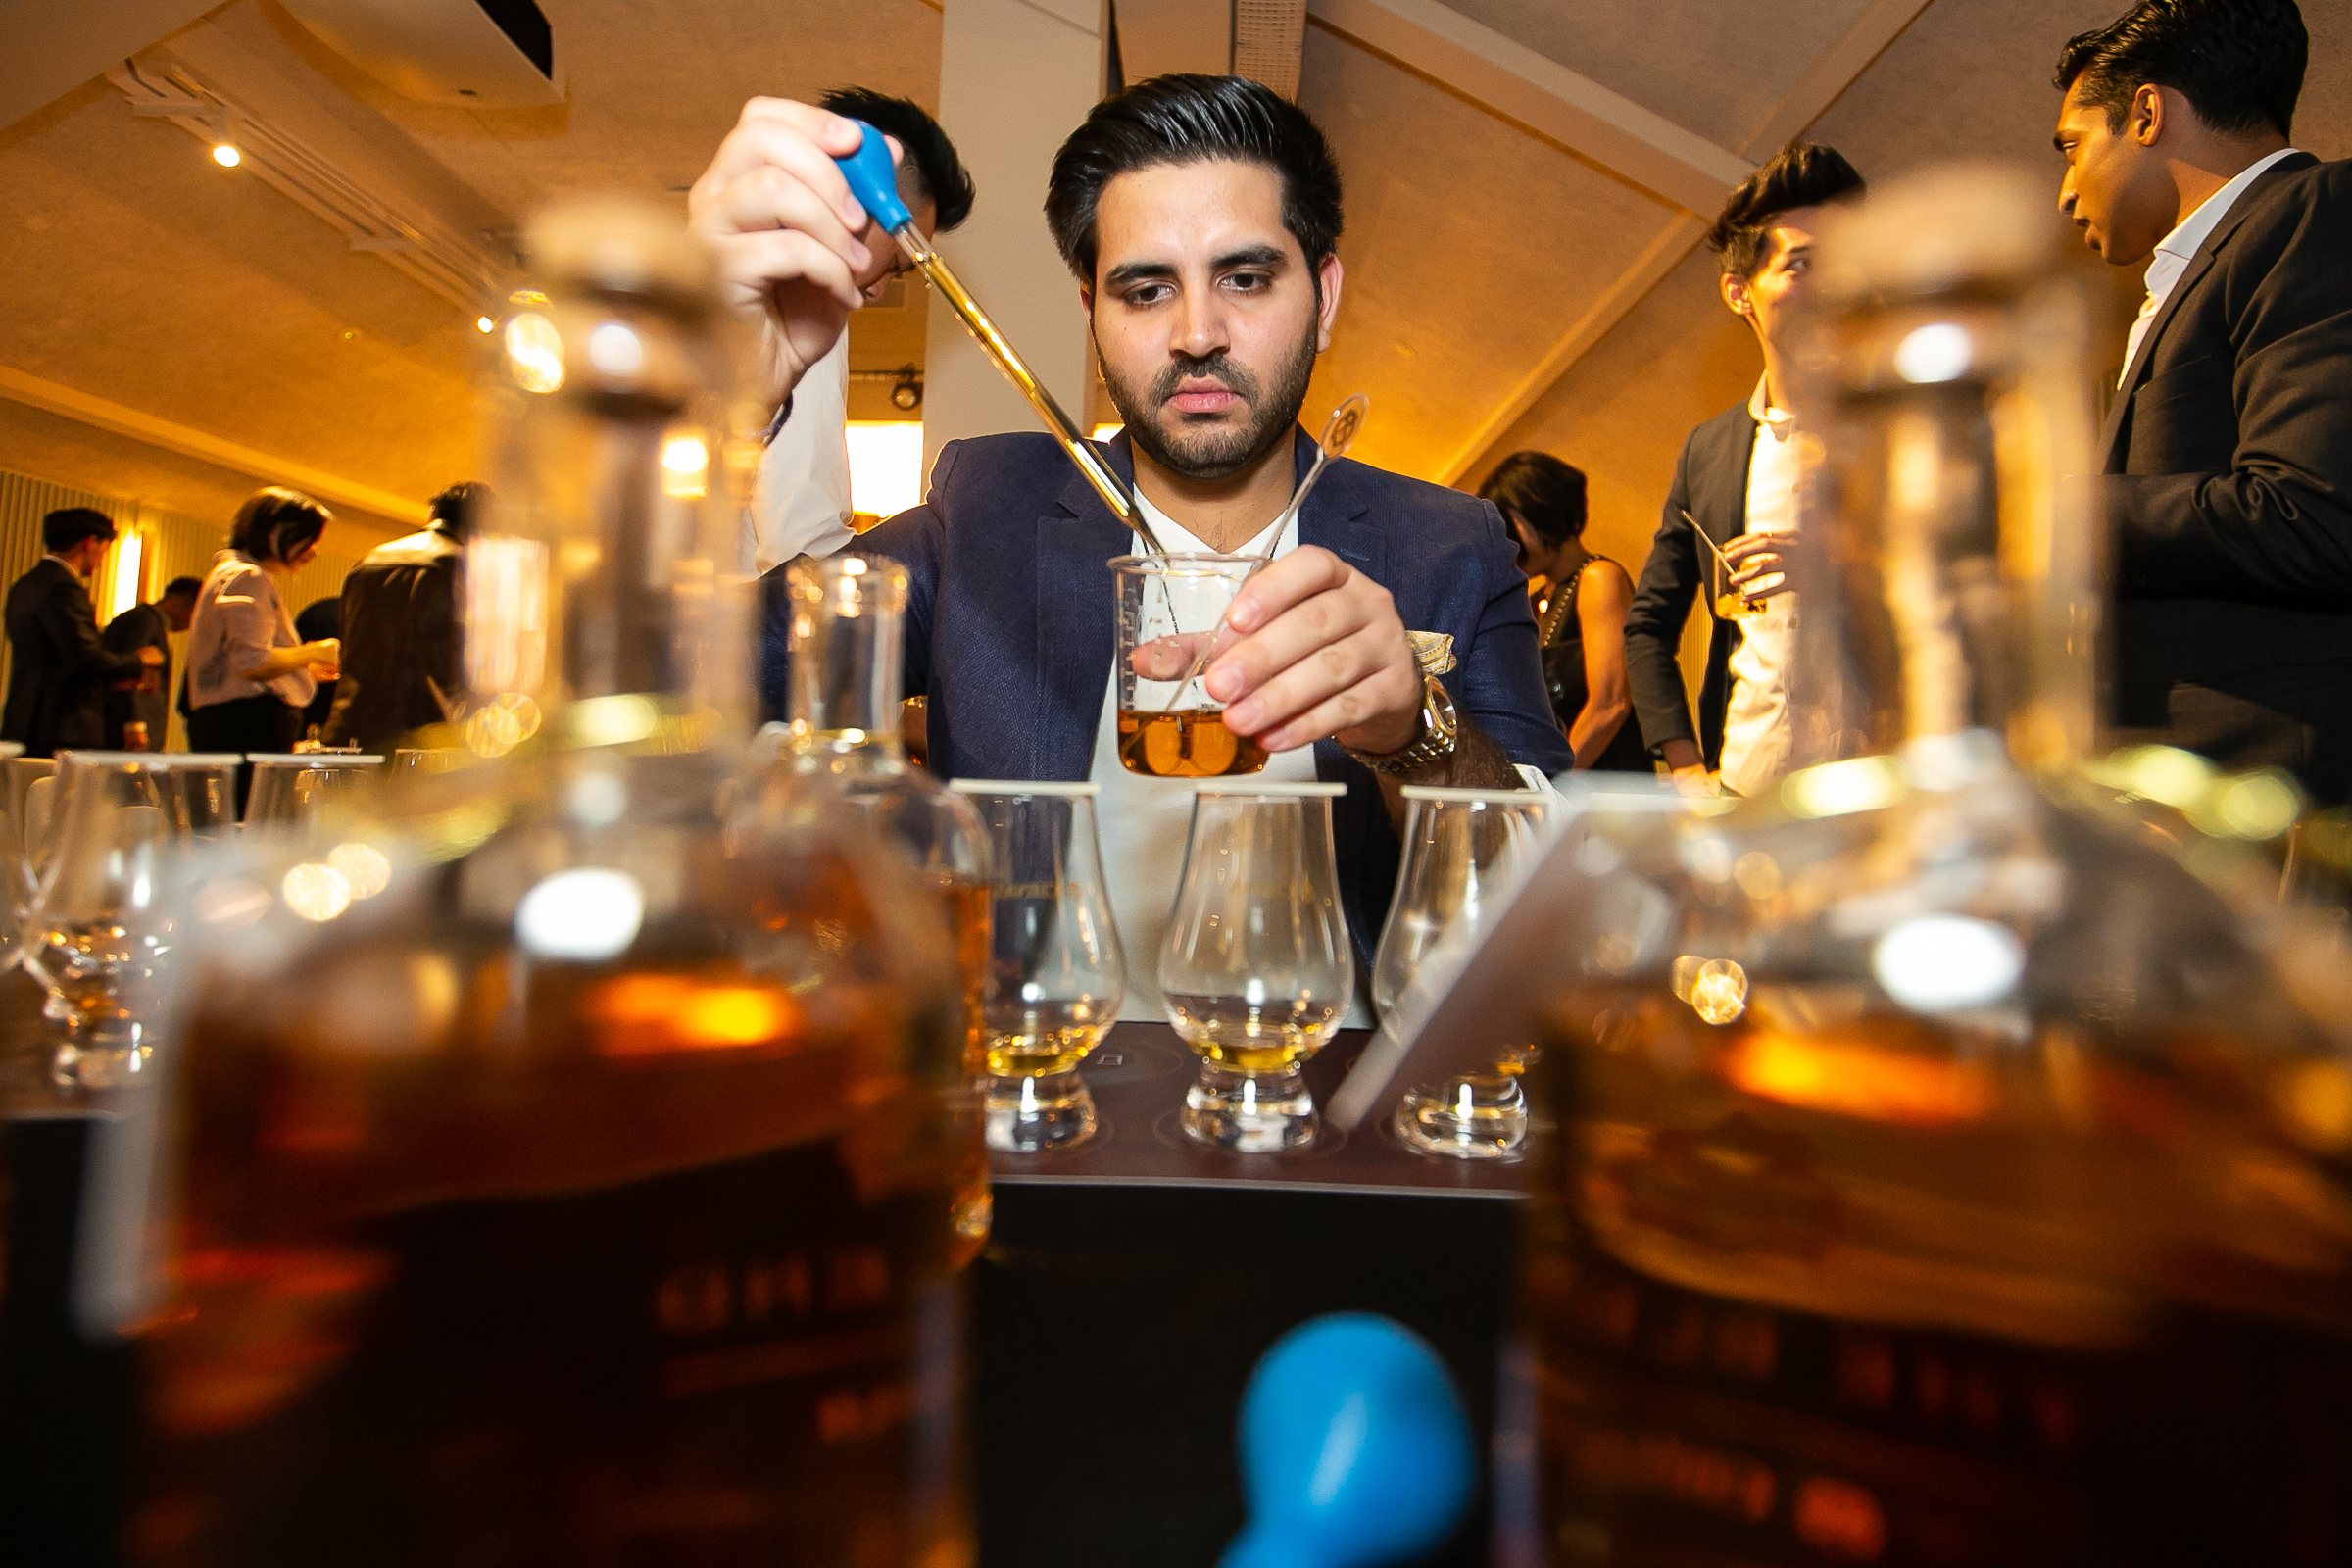 One of the participants carefully blending the whisky